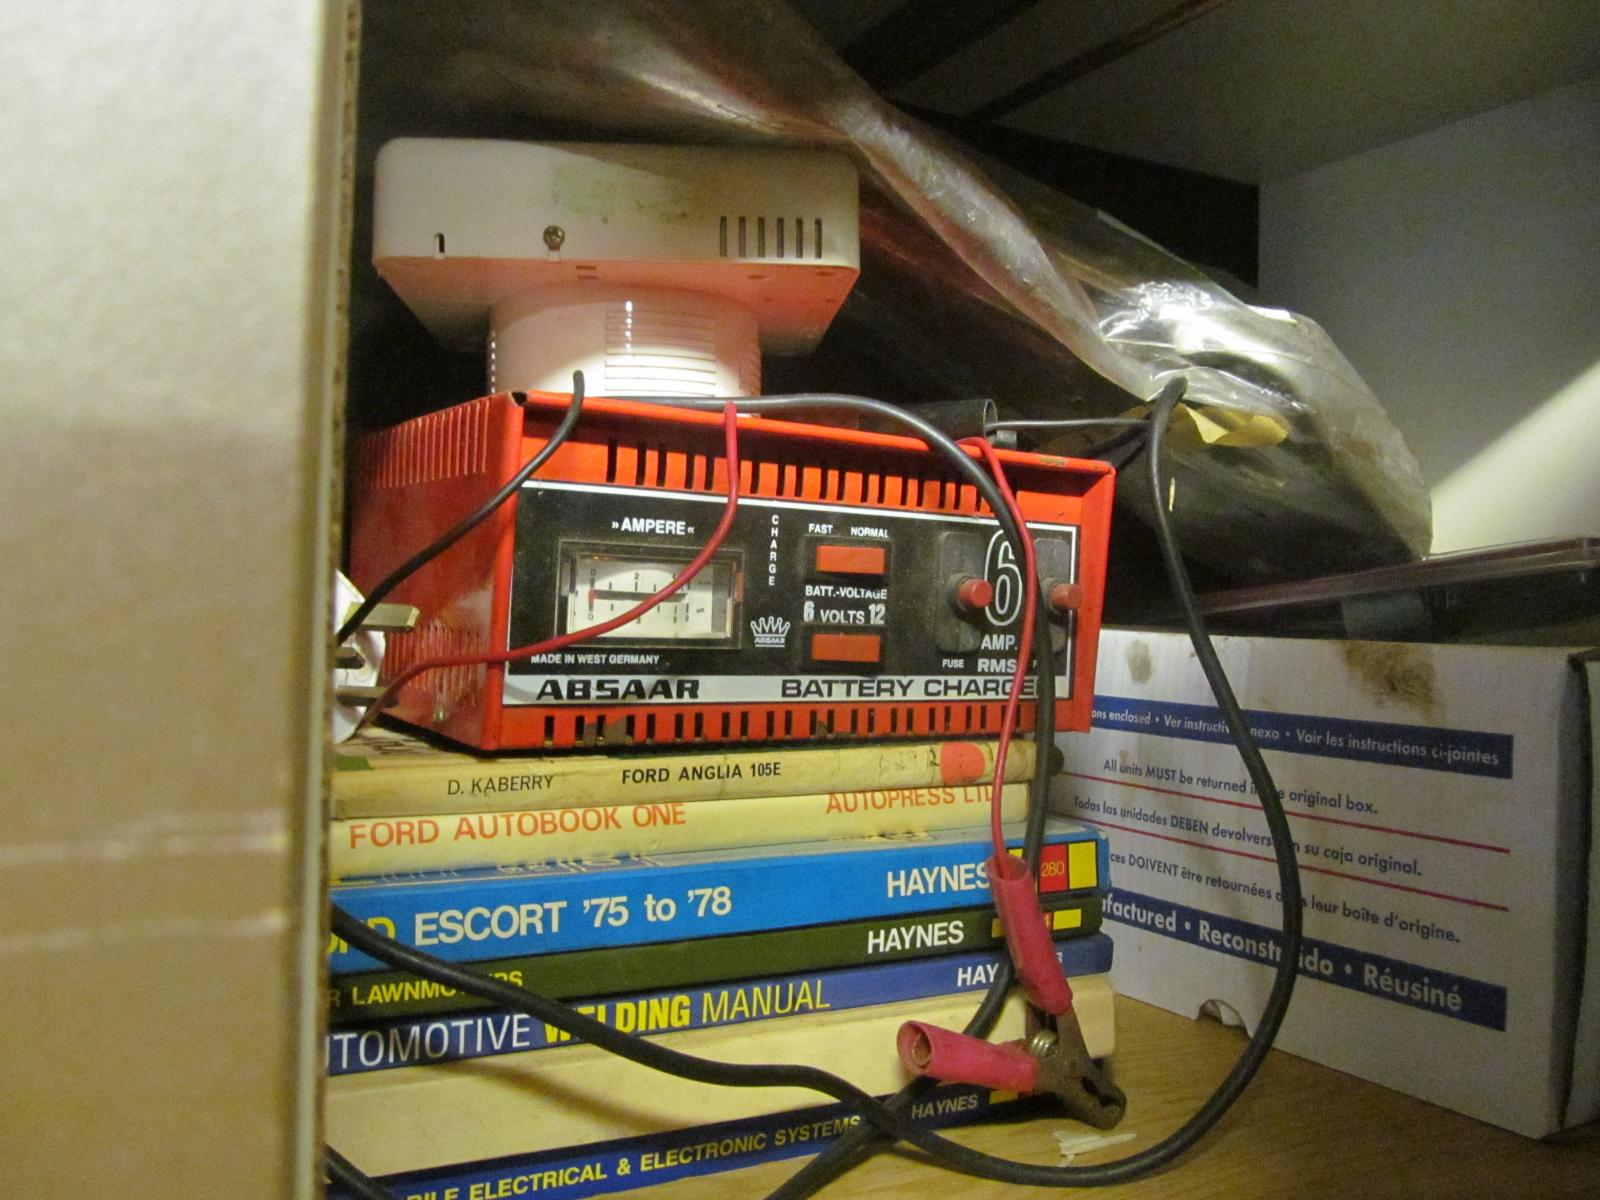 bradex battery charger instructions